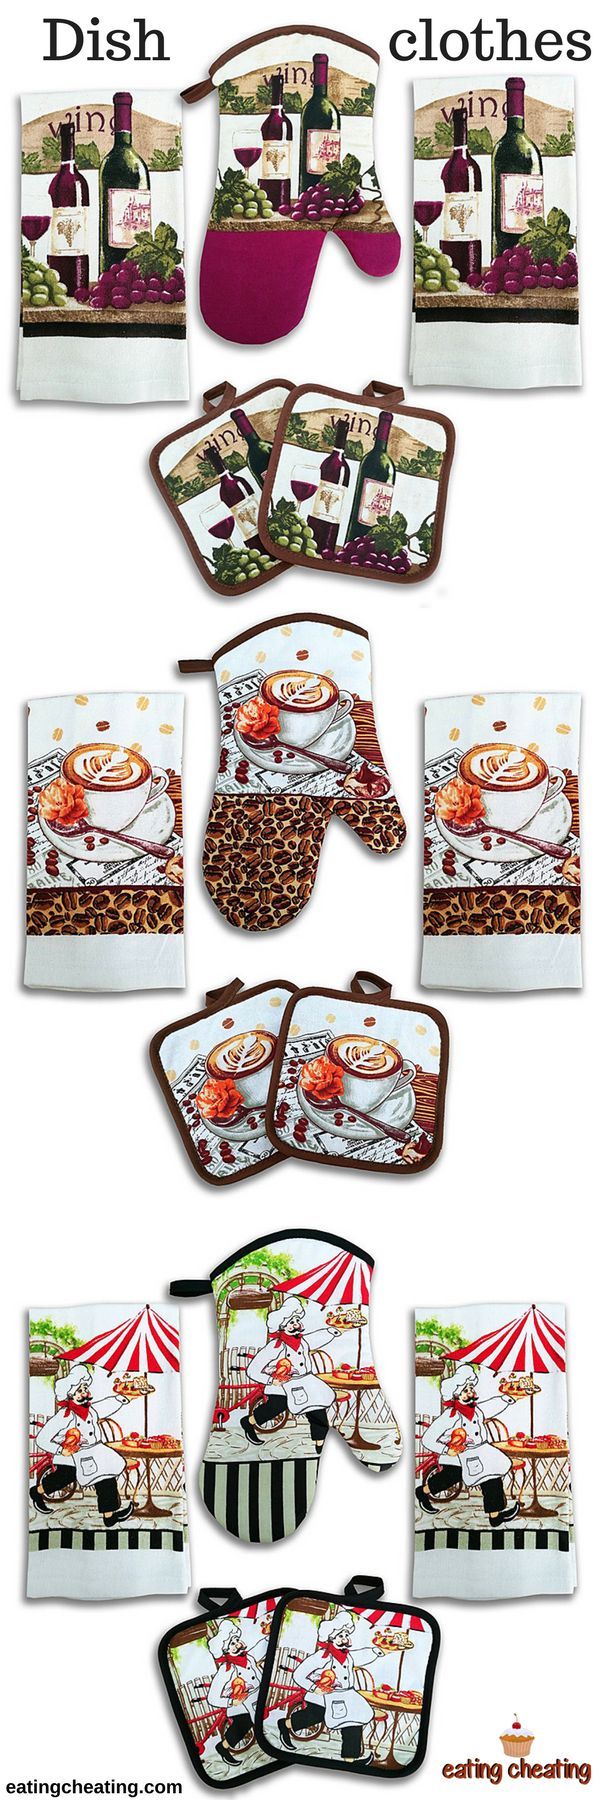 Every cook needs to have dish clothes, absorbent towels and high quality kitchen utensils! This absorbent towels and dish clothes are perfect for your kitchen! You will get 2 kitchen towels, 2 potholders and 1 oven mitt. Besides, coffee design is even more interesting and it gives the smell of morning routine. #kitchen #design #dishcloth #dish